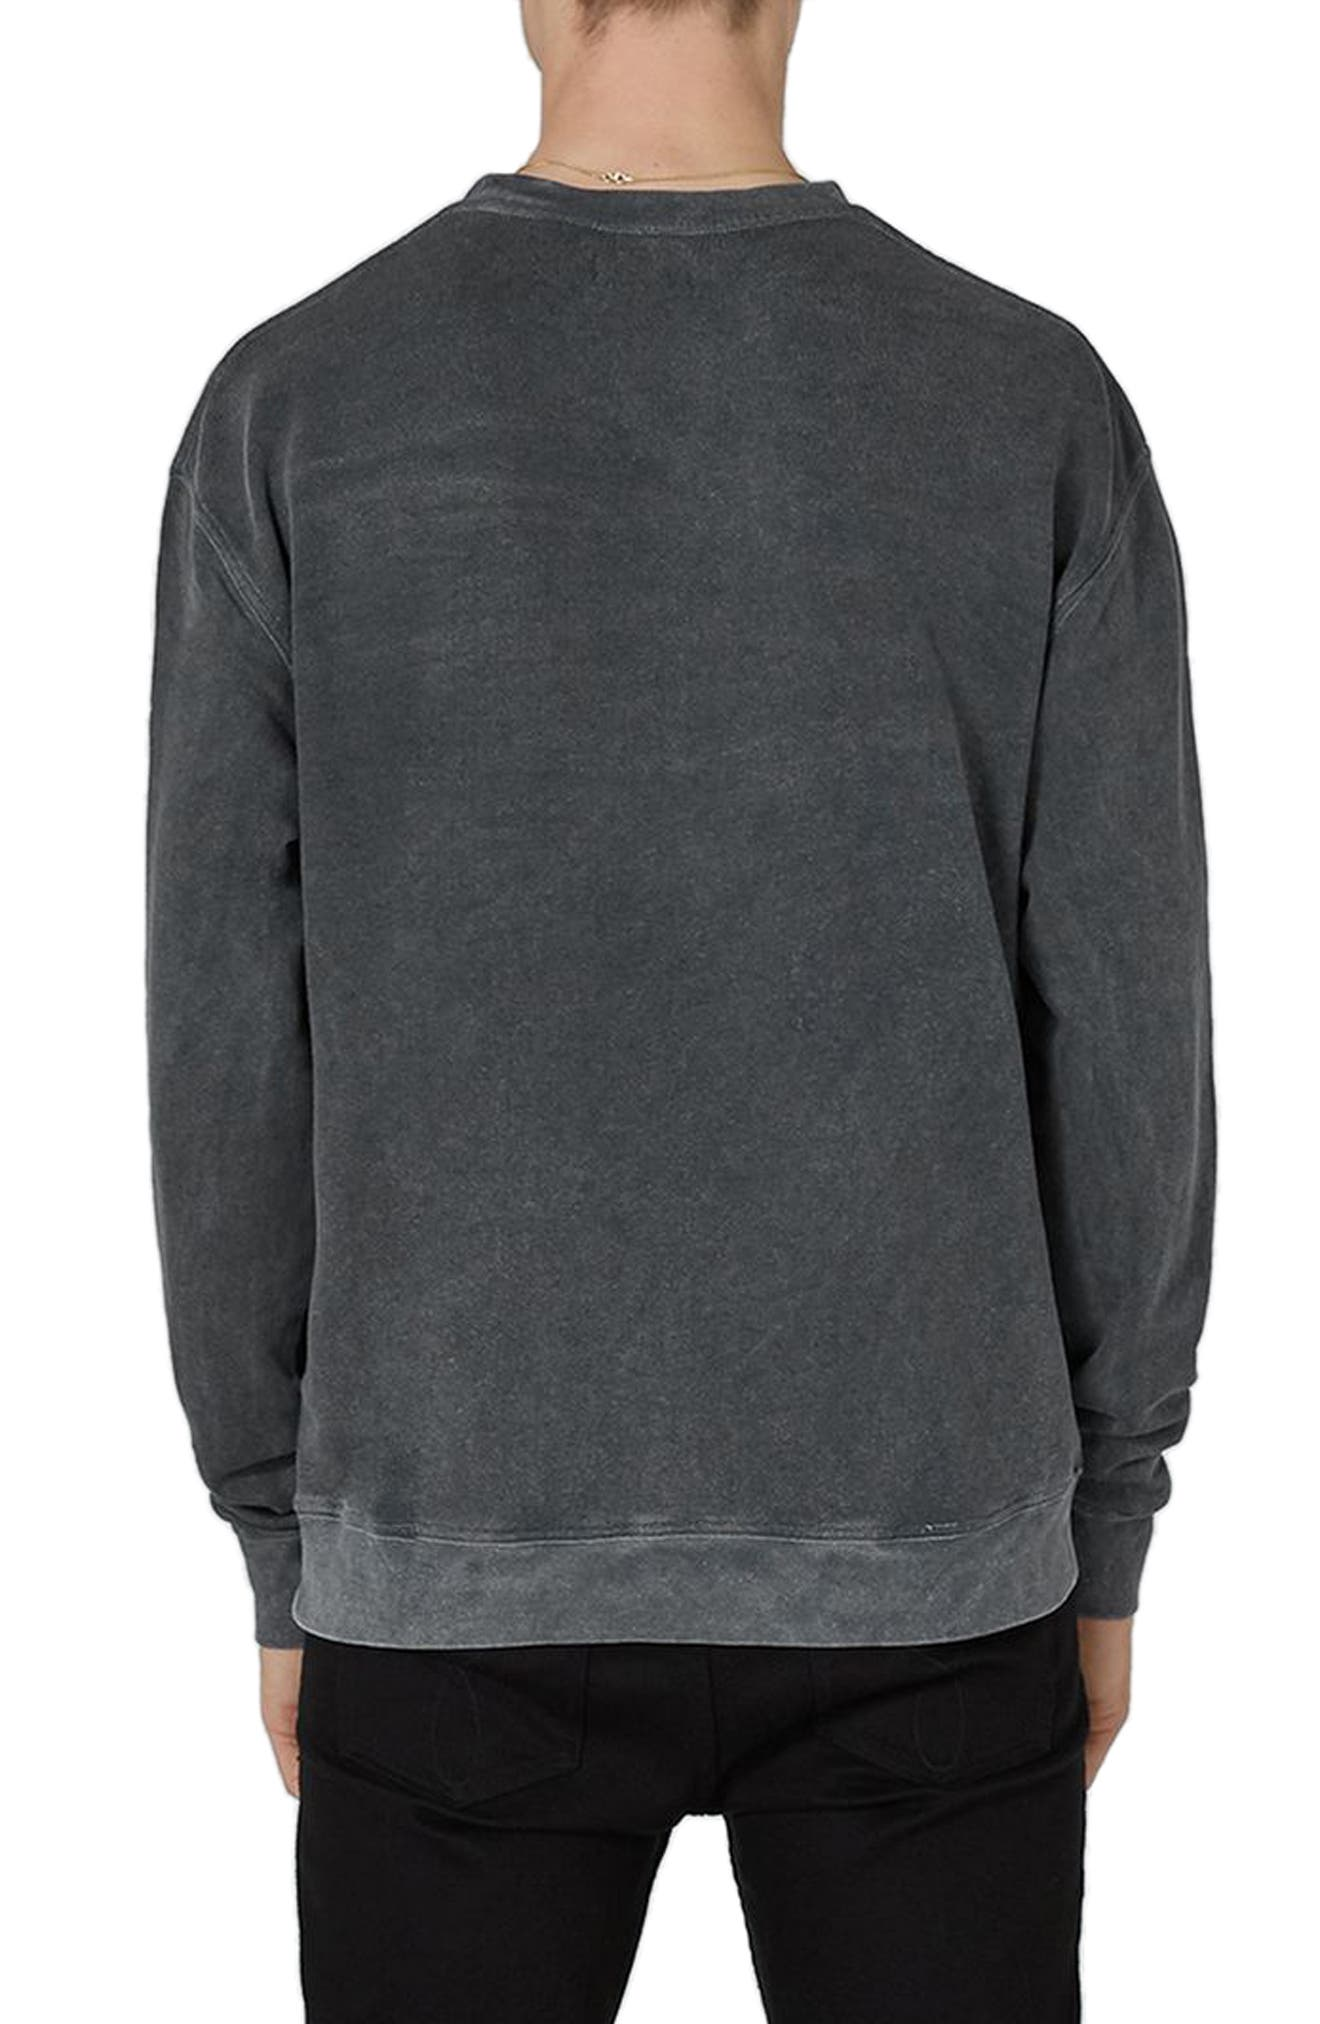 Percy Rose Embroidered Sweatshirt,                             Alternate thumbnail 2, color,